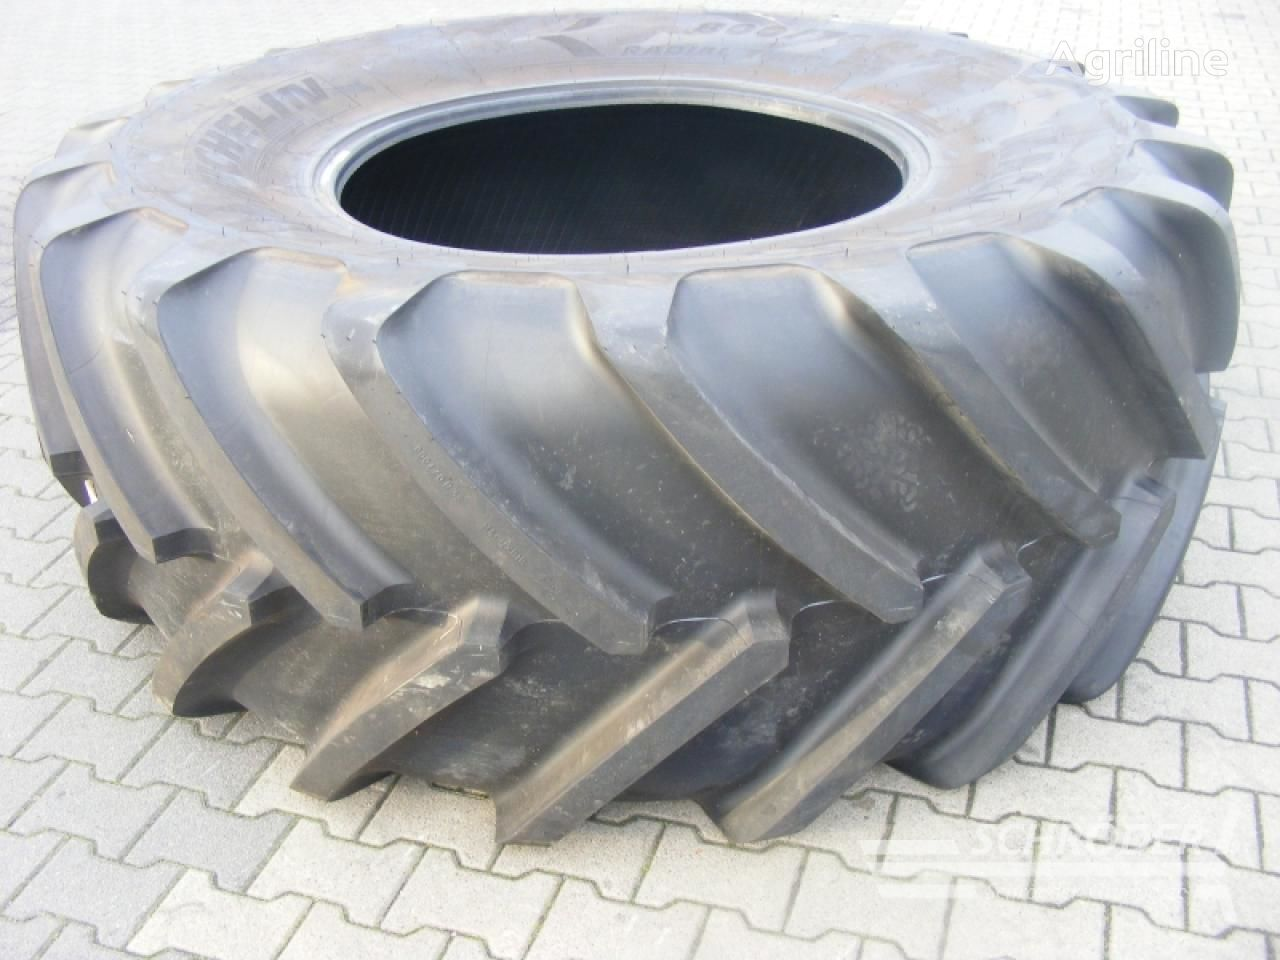 Michelin 800/70 R 38.00 tractor tyre